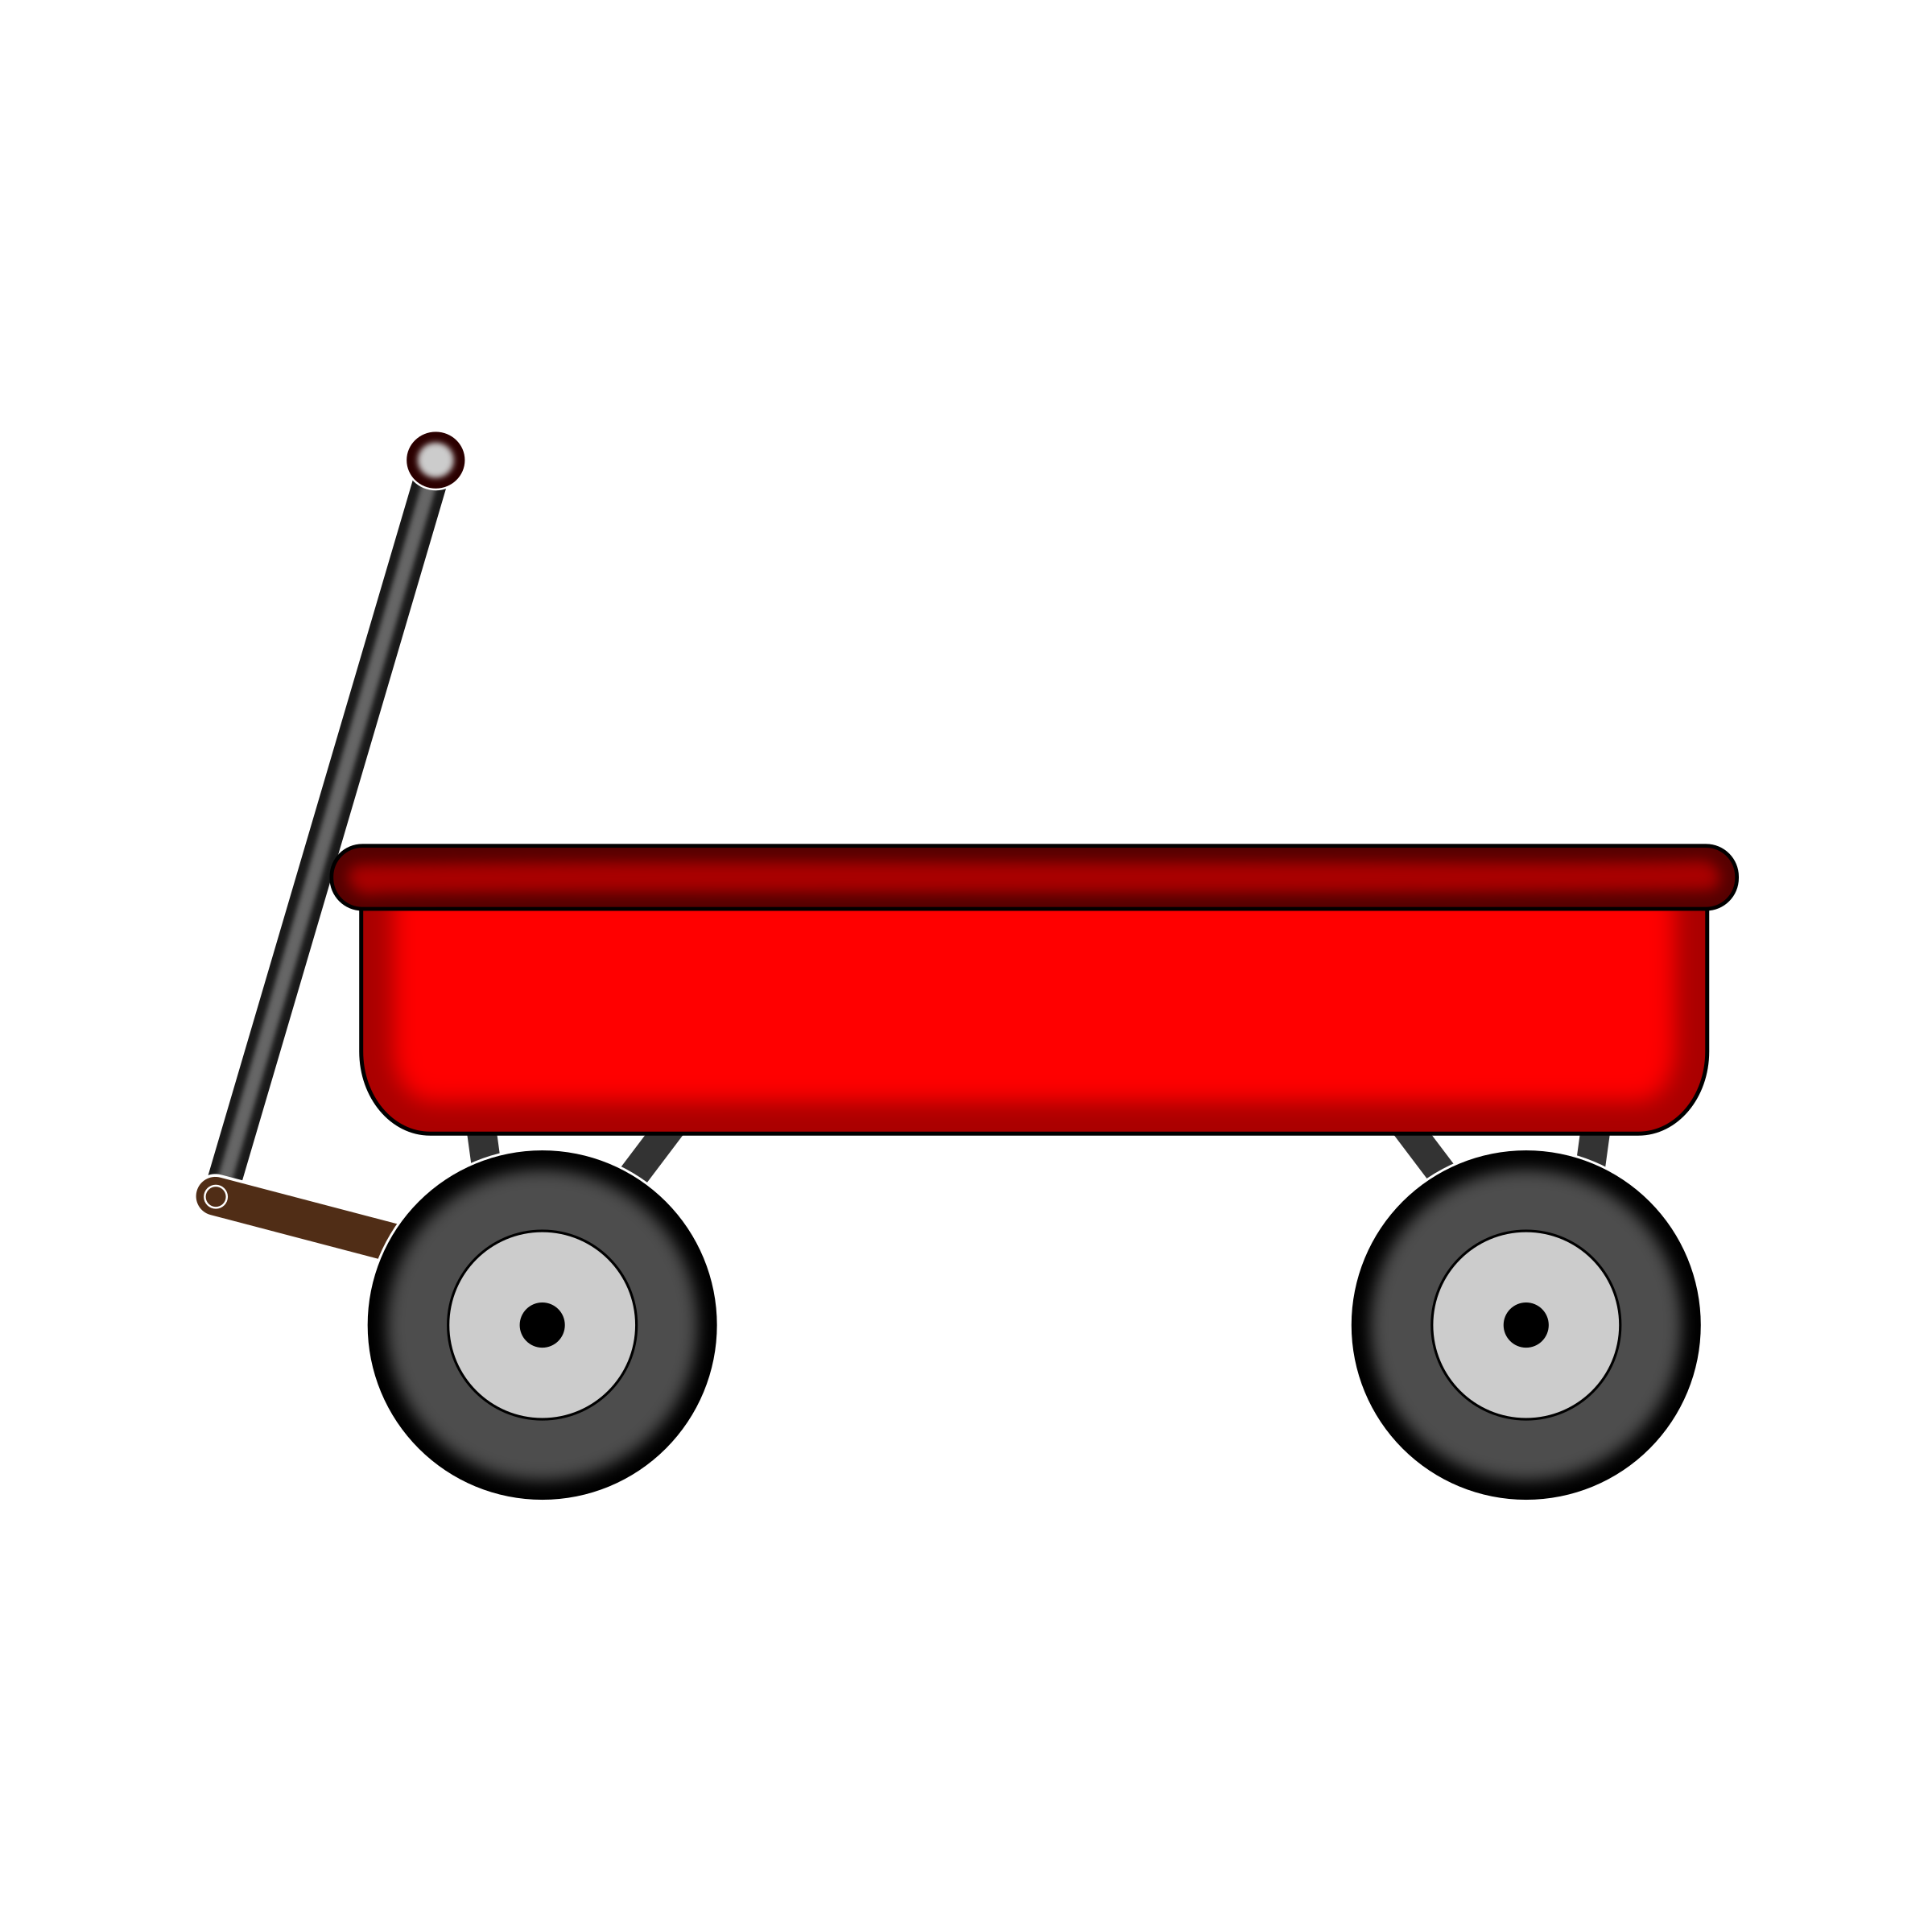 Clipart red wagon free stock Red Wagon Vector Clipart image - Free stock photo - Public Domain ... free stock